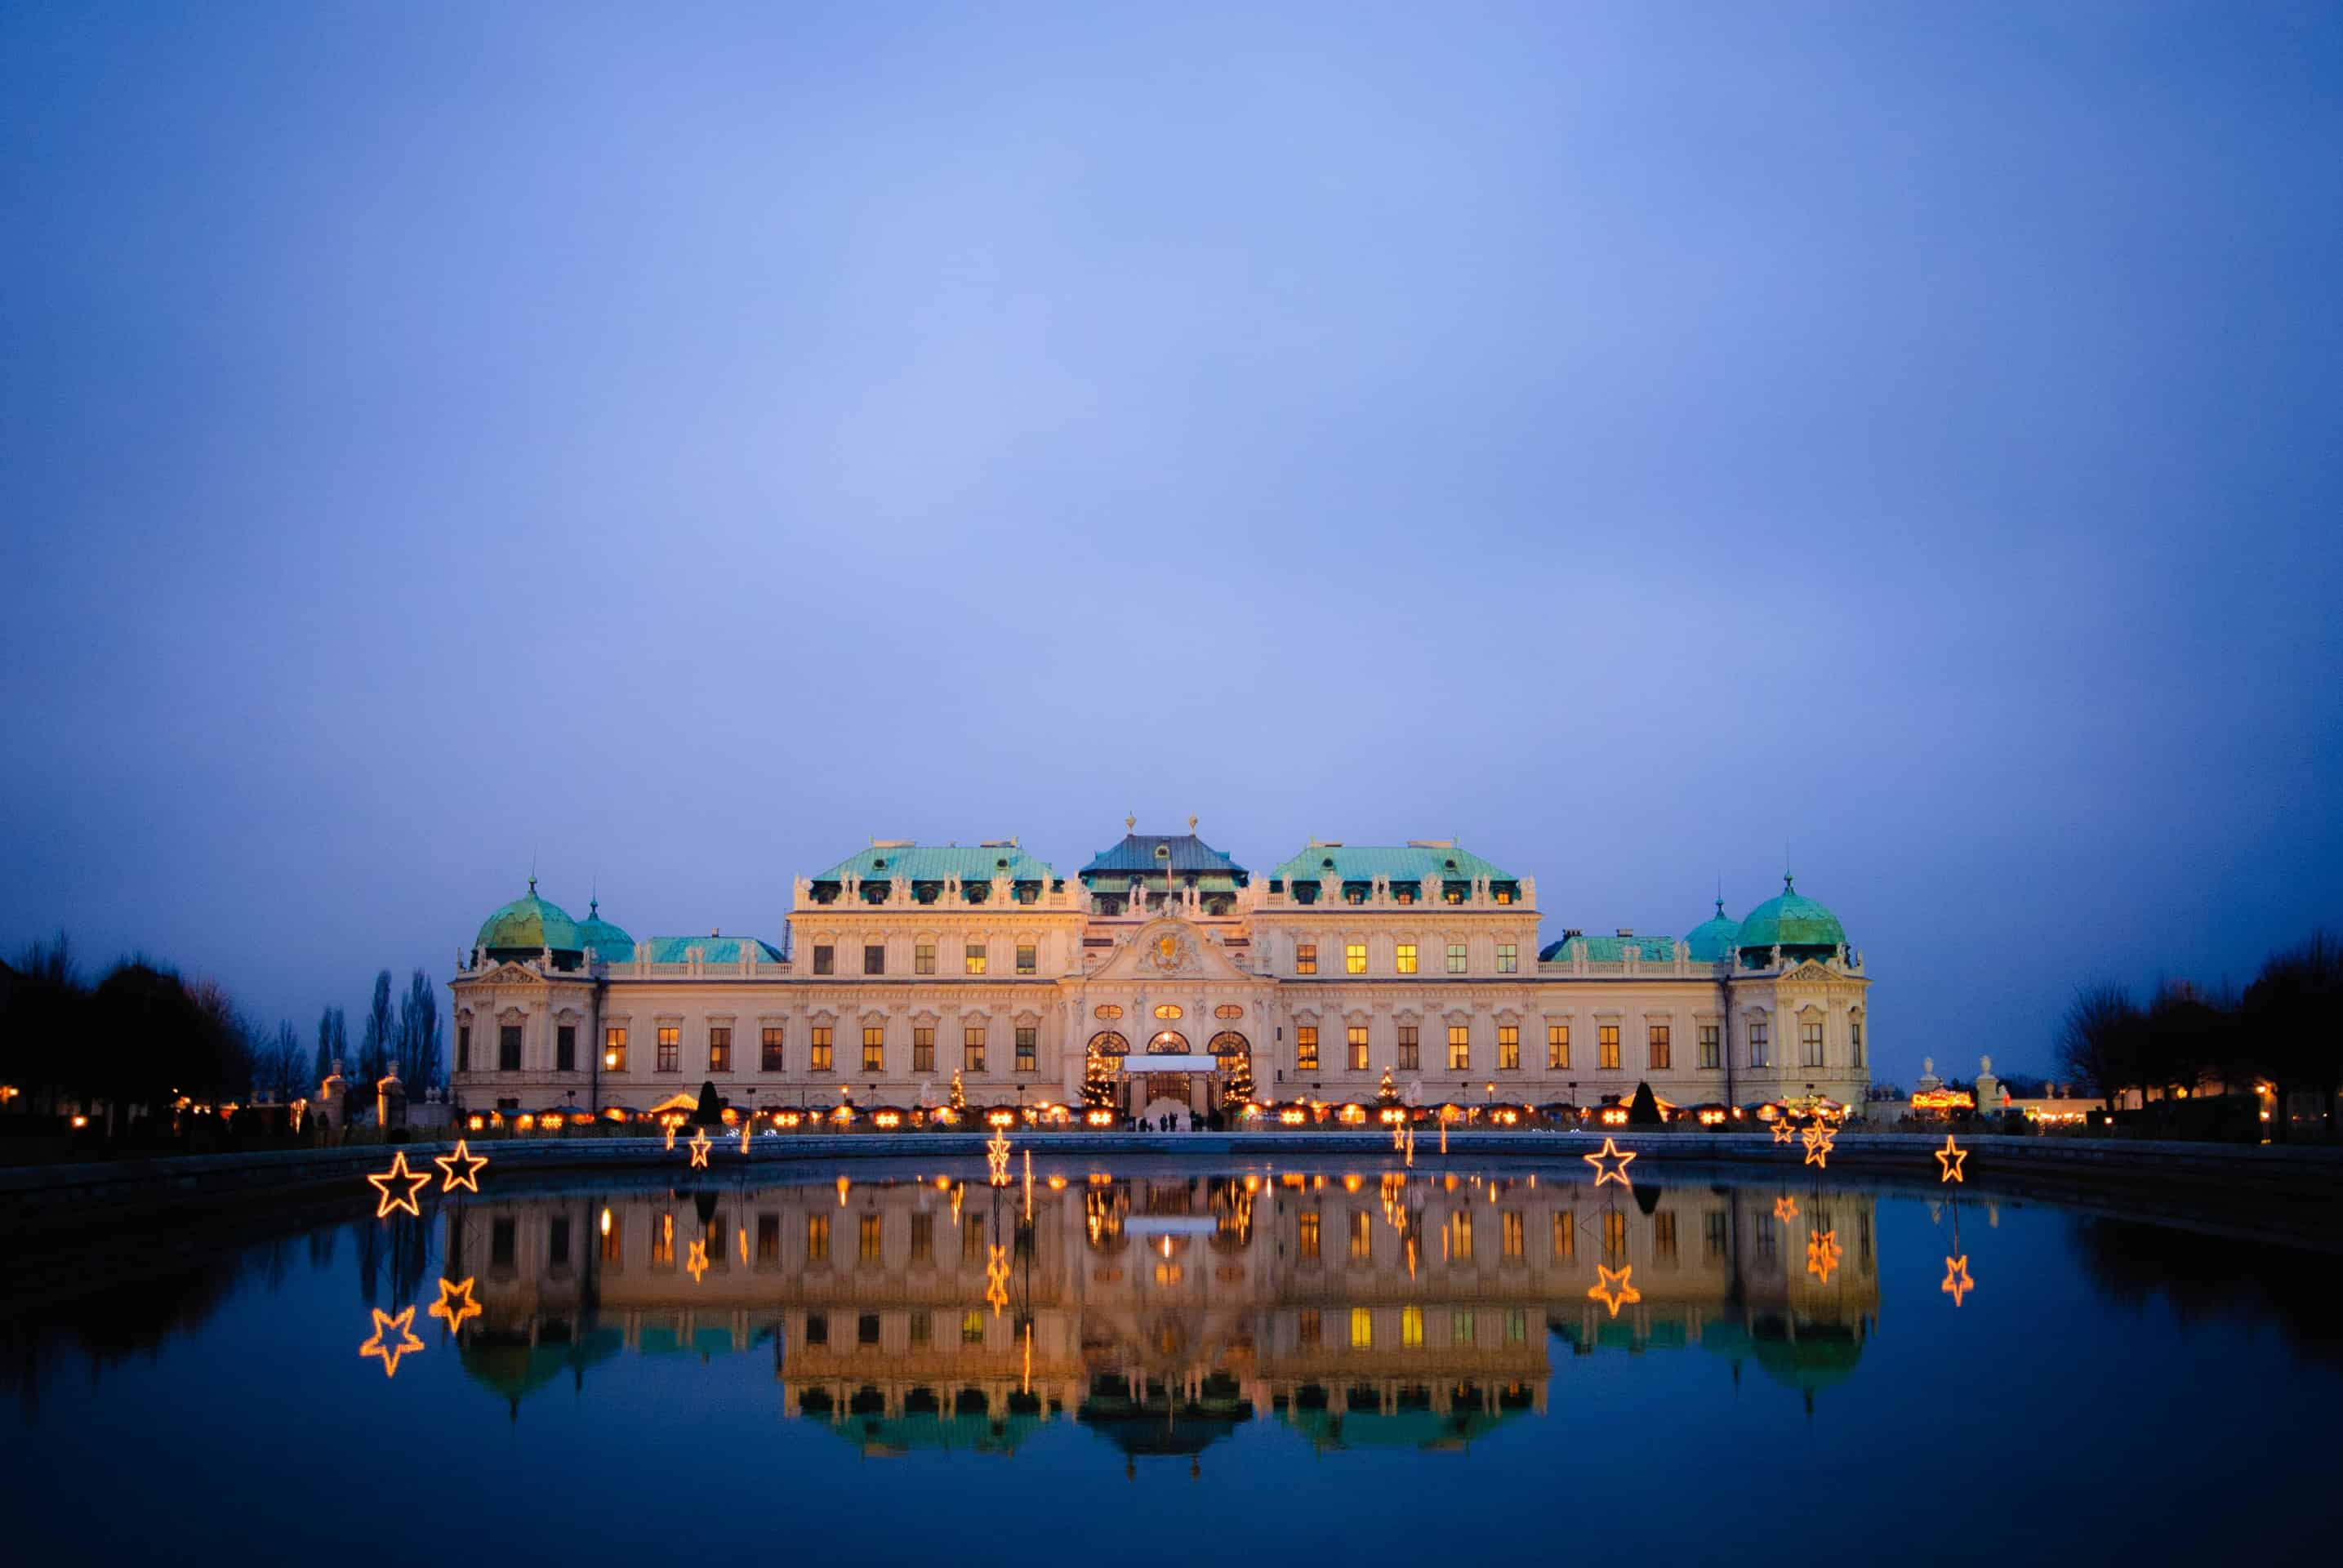 The Upper Belvedere lit up at night